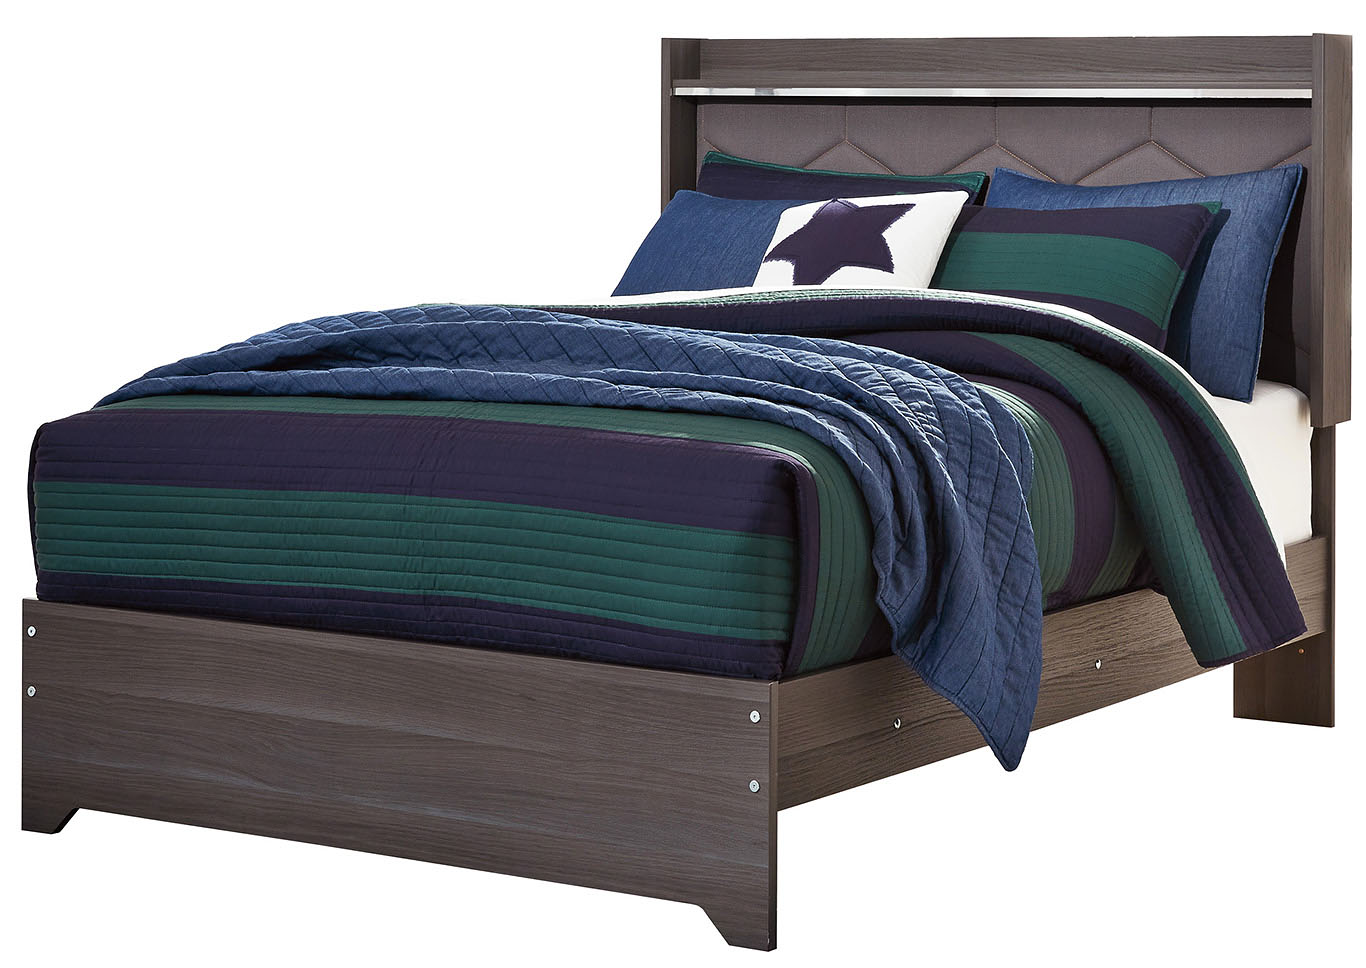 Annikus Gray Twin Upholstered Panel Bed,Signature Design By Ashley